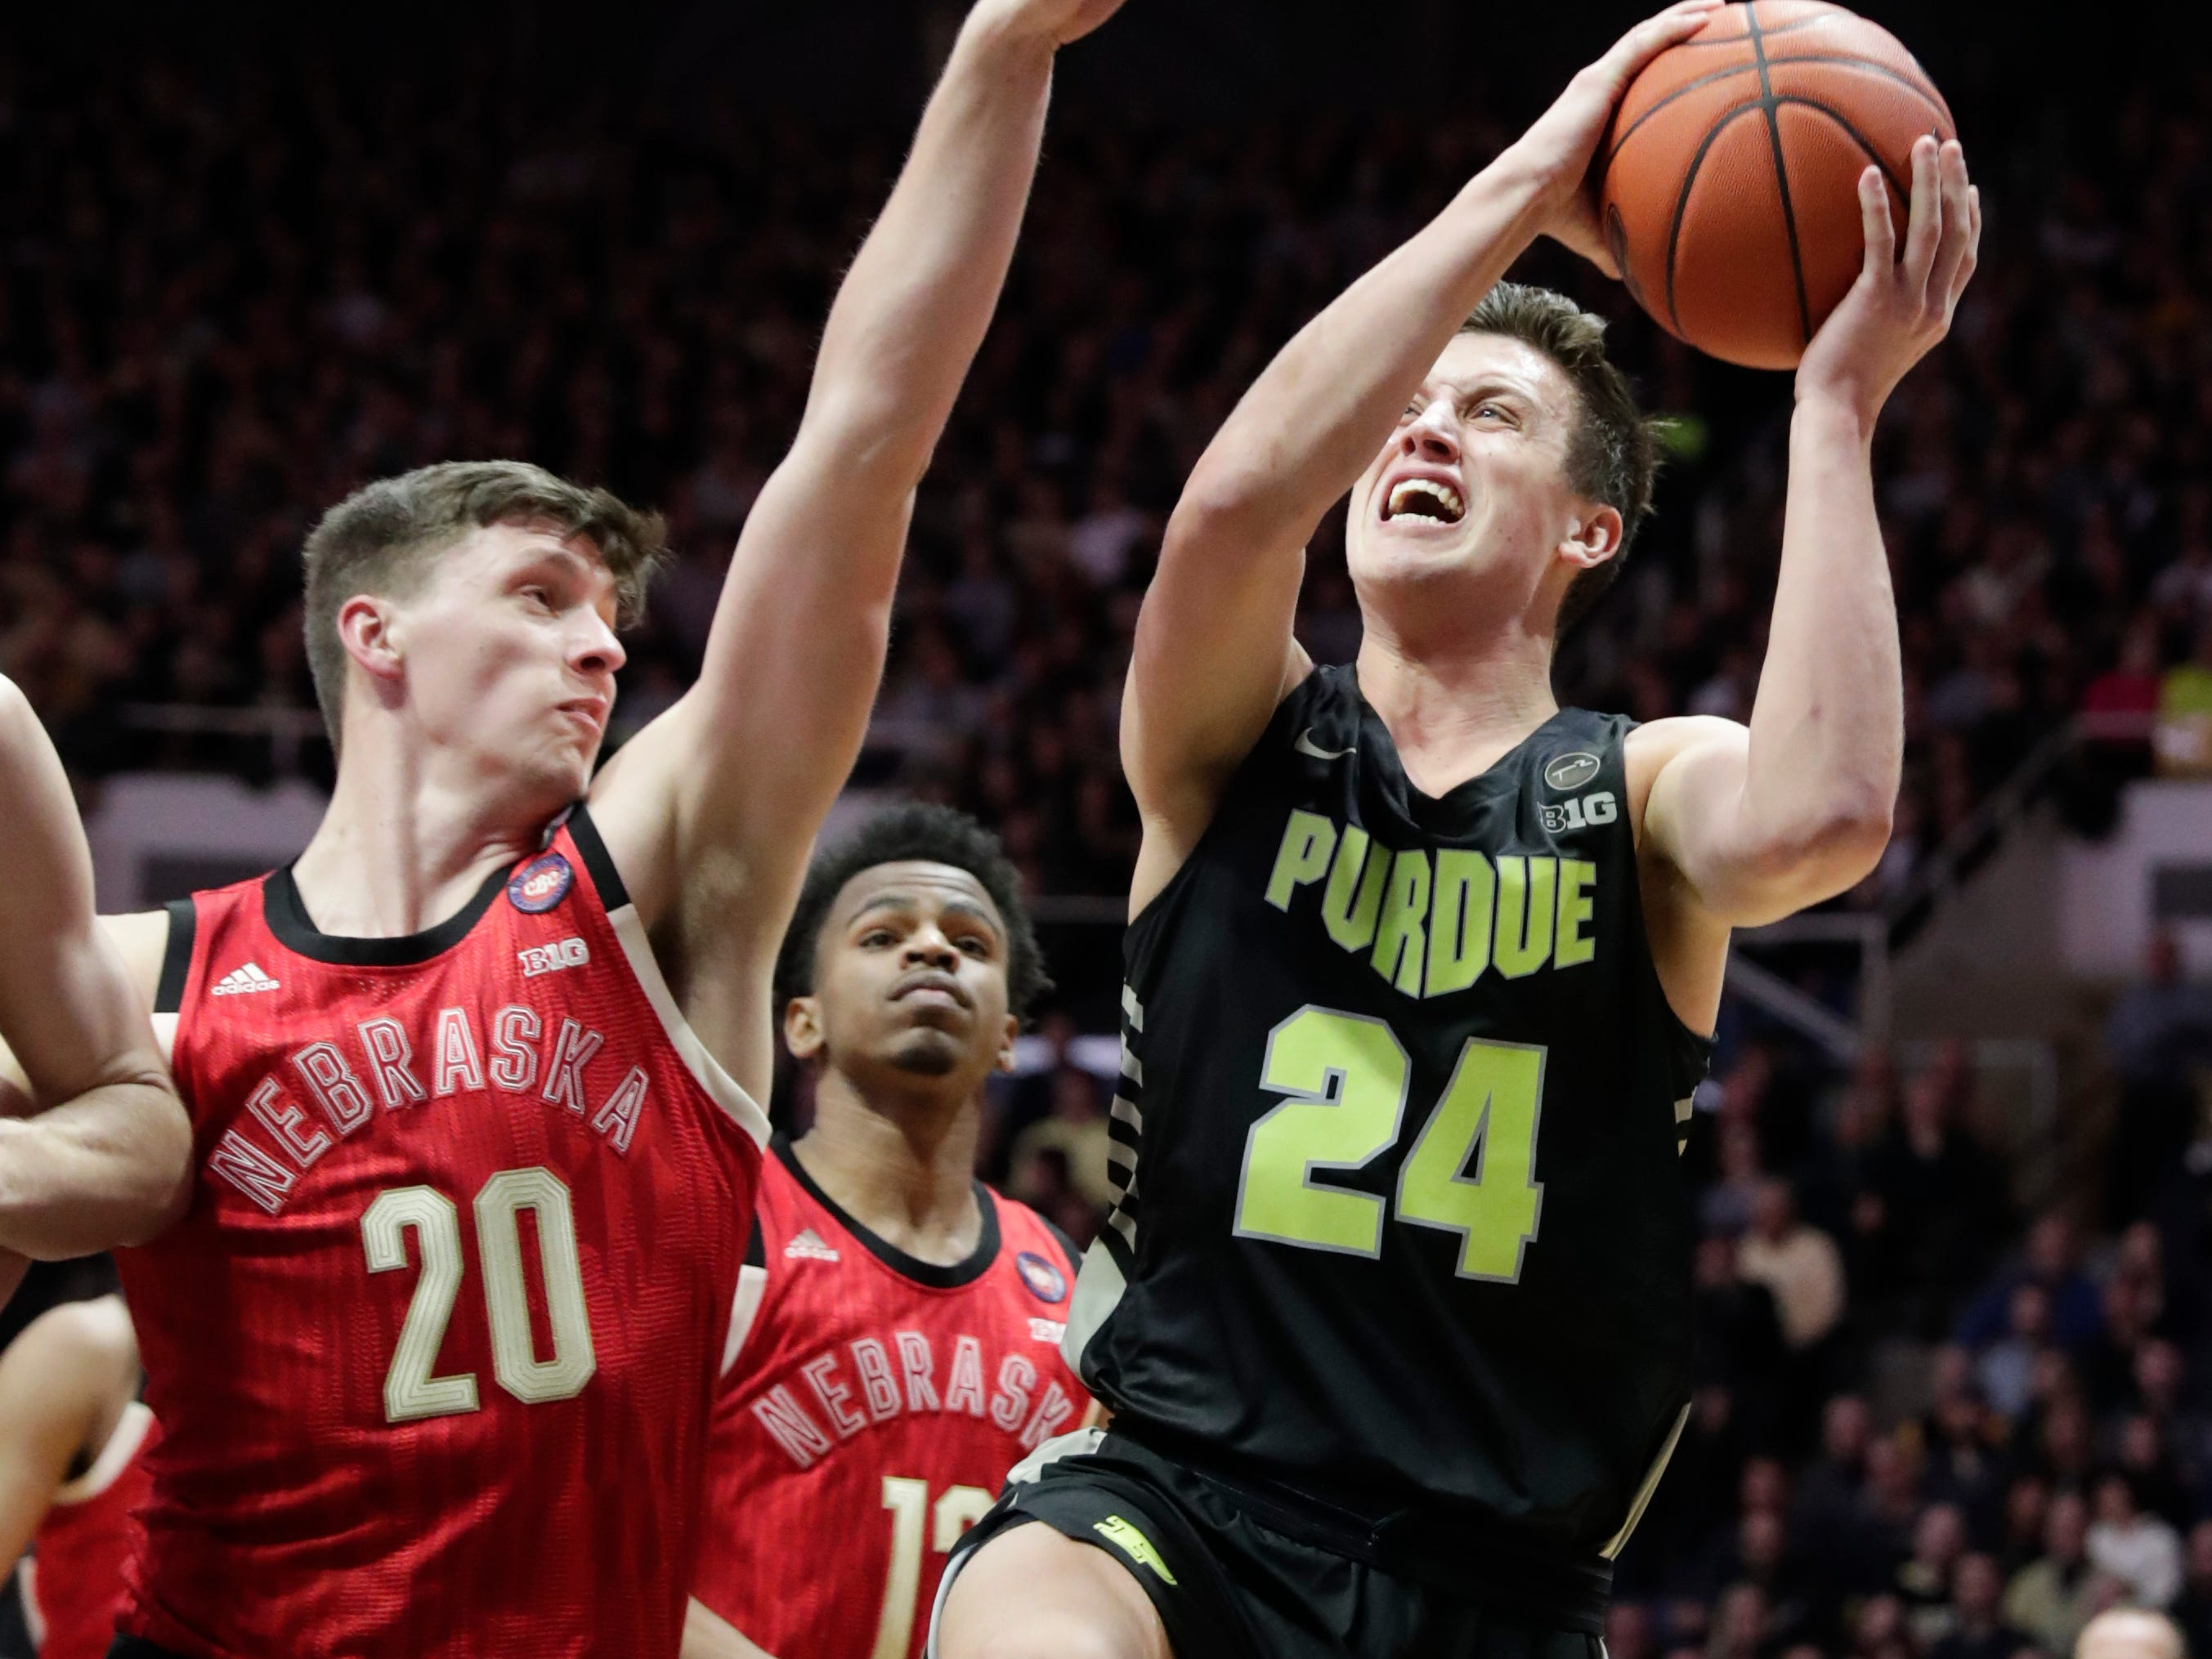 Purdue forward Grady Eifert (24) shoots over Nebraska forward Tanner Borchardt (20) during the first half